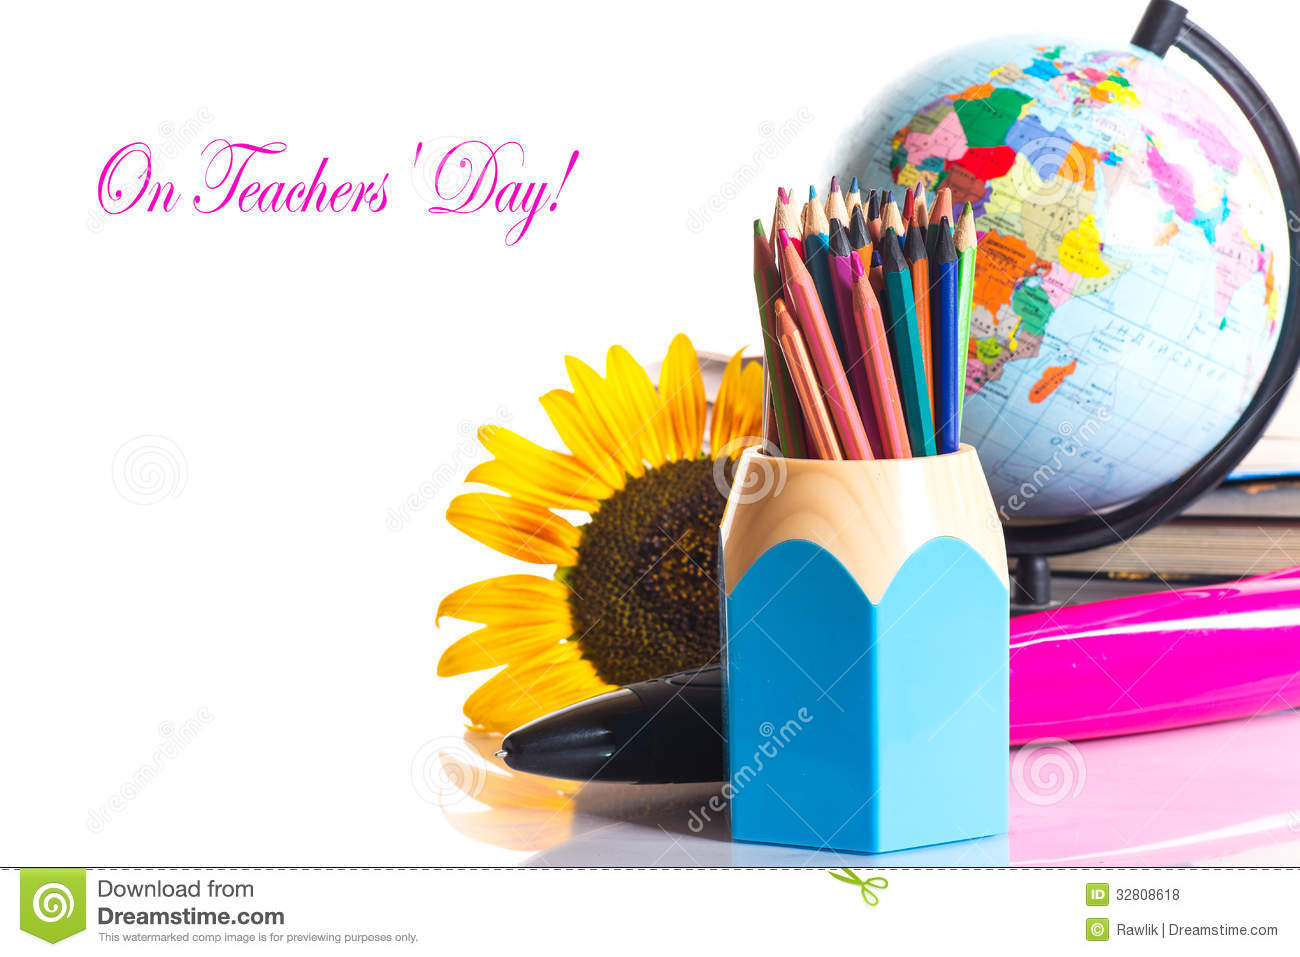 flower vase drawing images with Royalty Free Stock Photos Teacher S Day Globe Pencils Sunflower White Background Image32808618 on Rose Love Flower Drawing Hoontoidly Rose Love Drawing Images furthermore Flower Line Drawing Tumblr besides Stock Illustration Vintage Vase Flowers Hand Drawn Sketch Illustration Isolated White Background Image79818107 further Fillers And Other Flowers as well Grass Drawing.